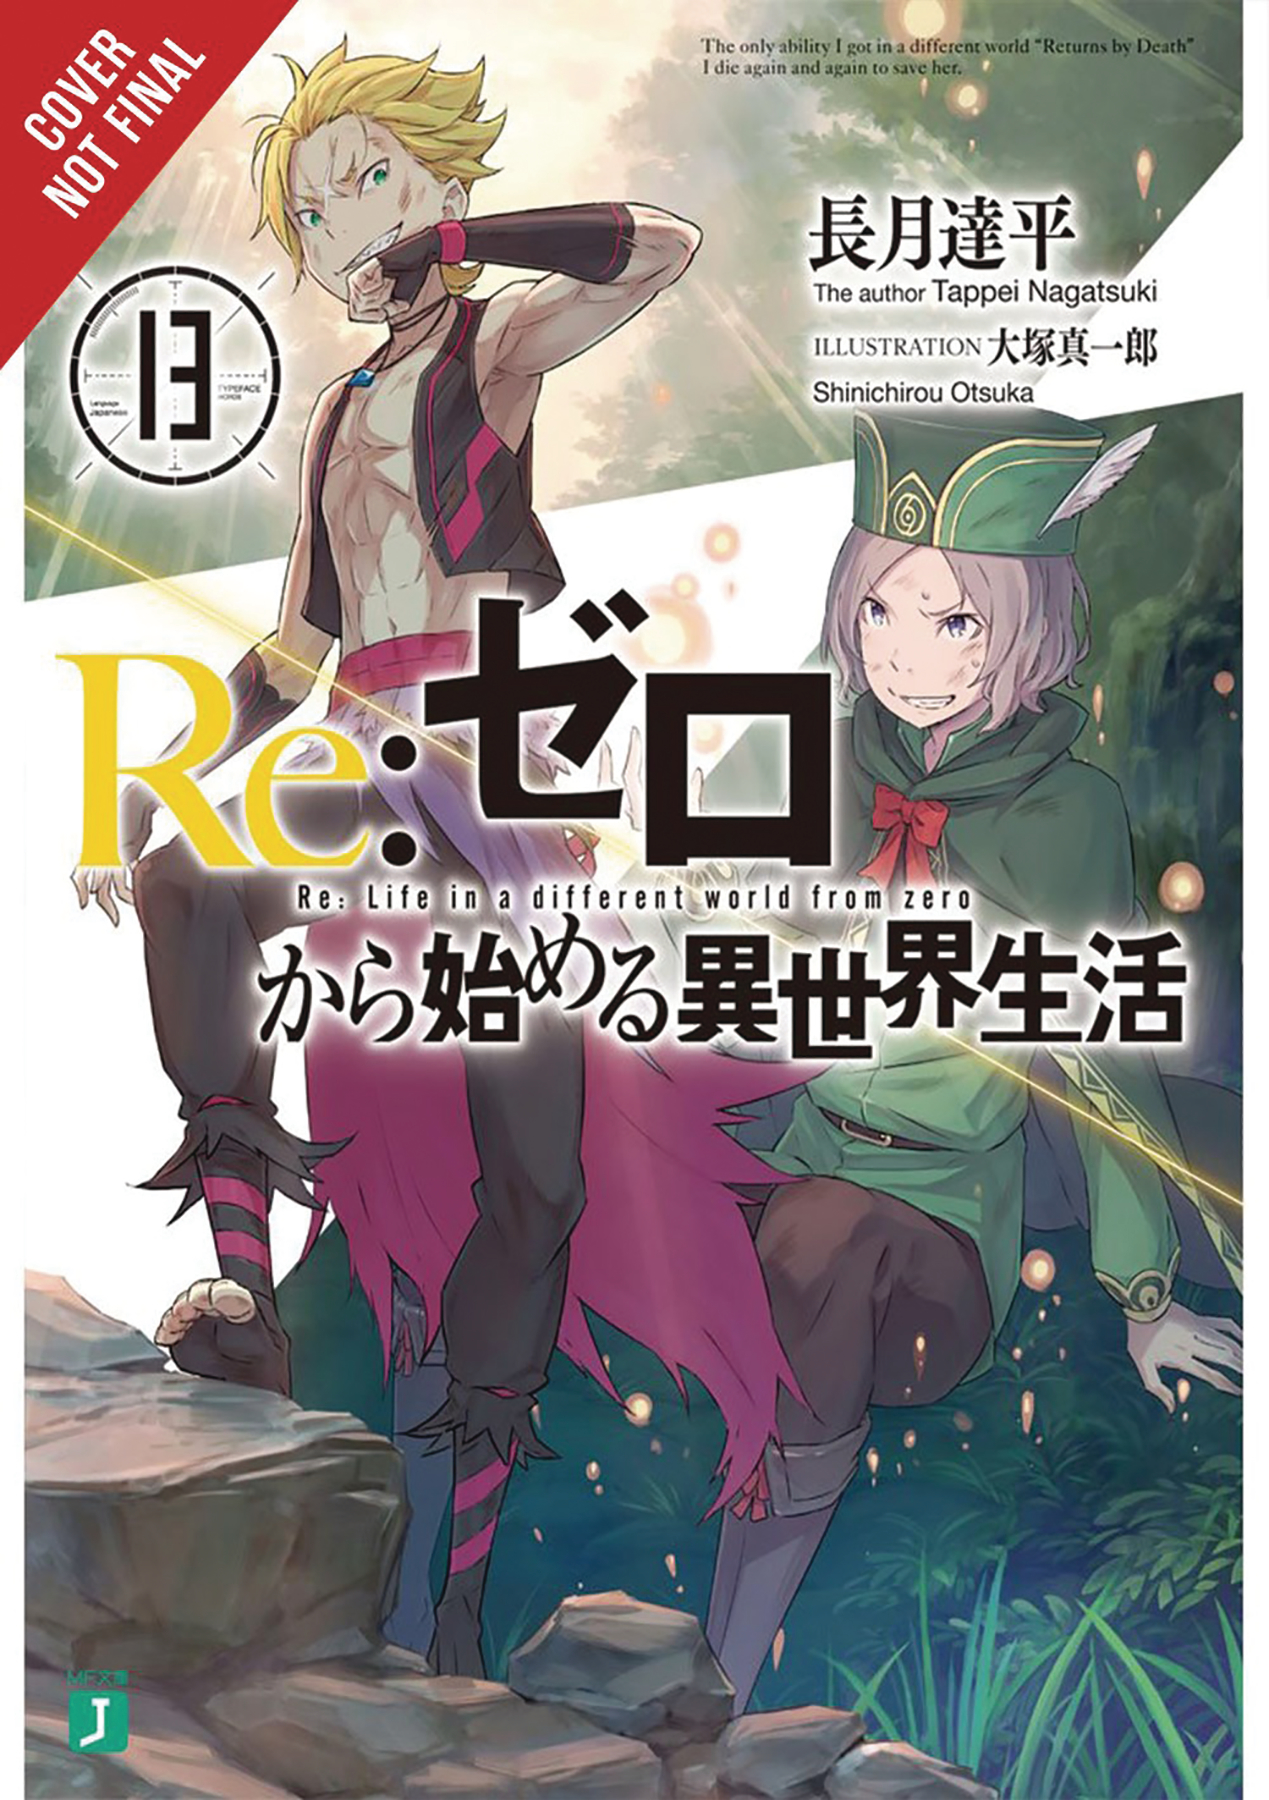 RE ZERO SLIAW LIGHT NOVEL SC VOL 13